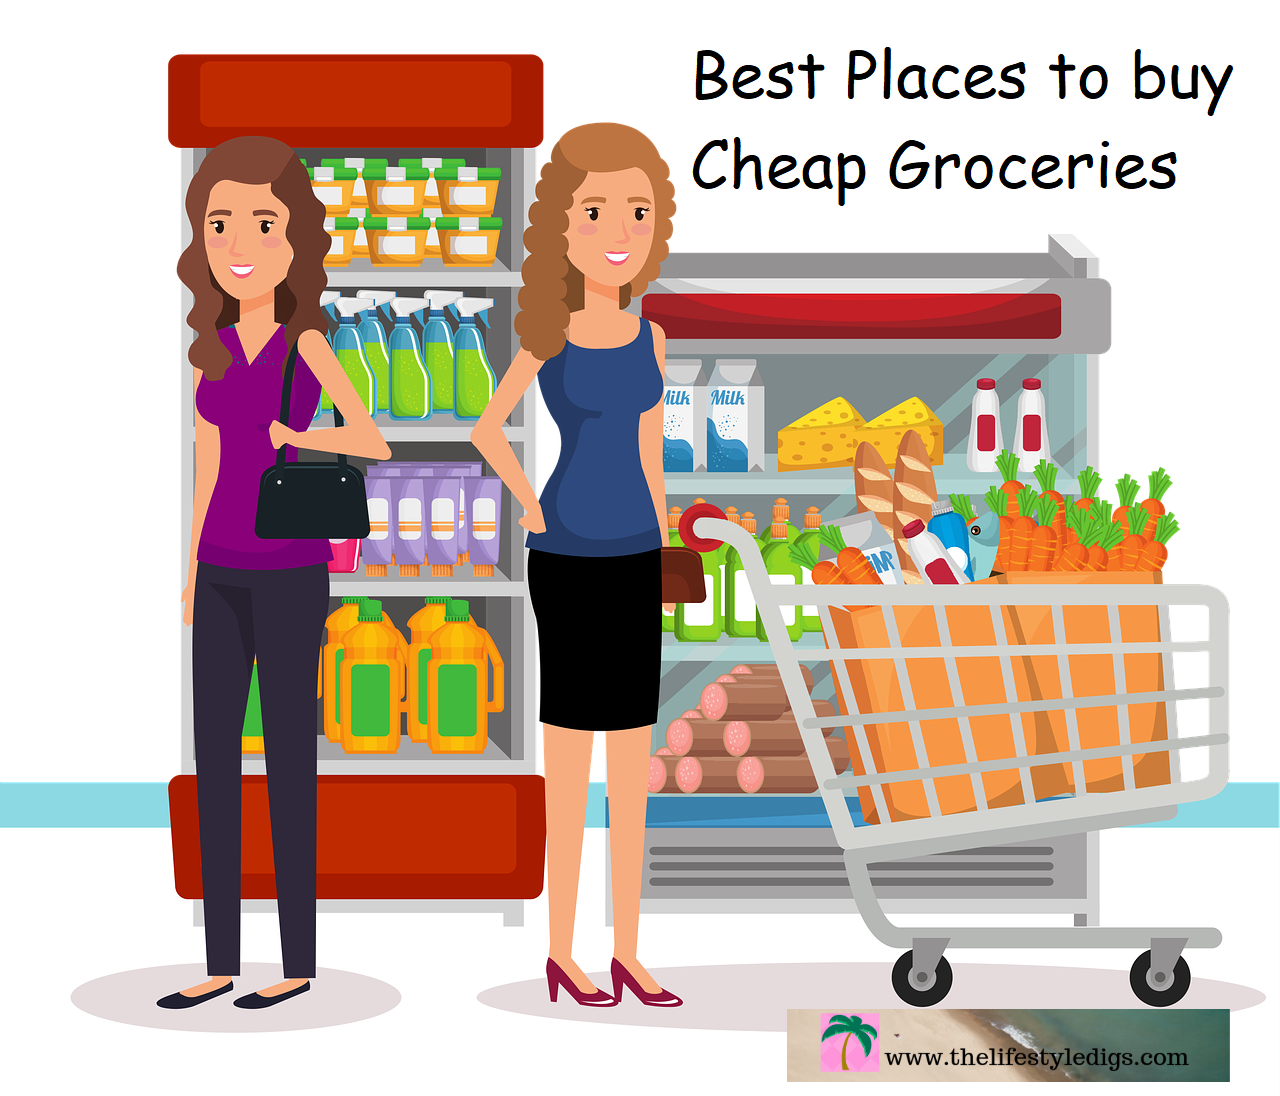 Best Places to buy Cheap Groceries